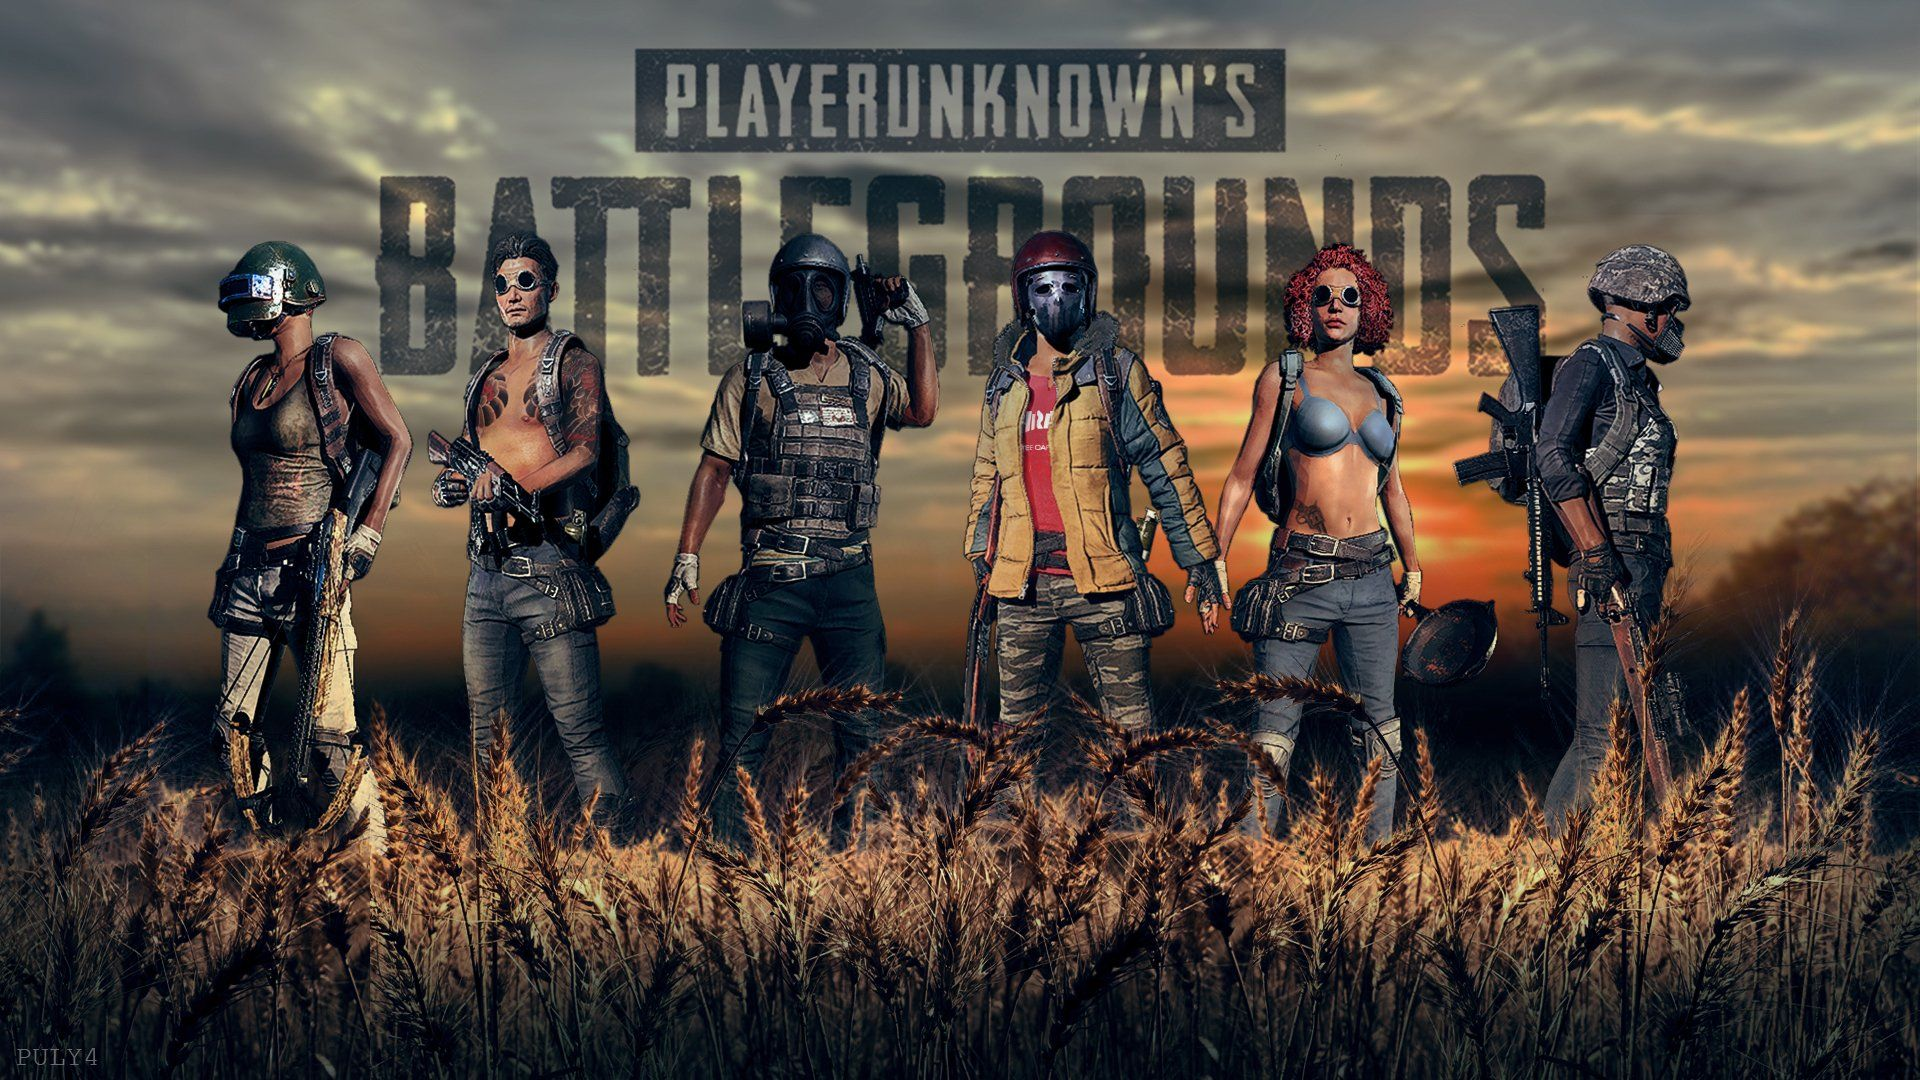 Pubg Hd Wallpaper Posted By Ryan Anderson